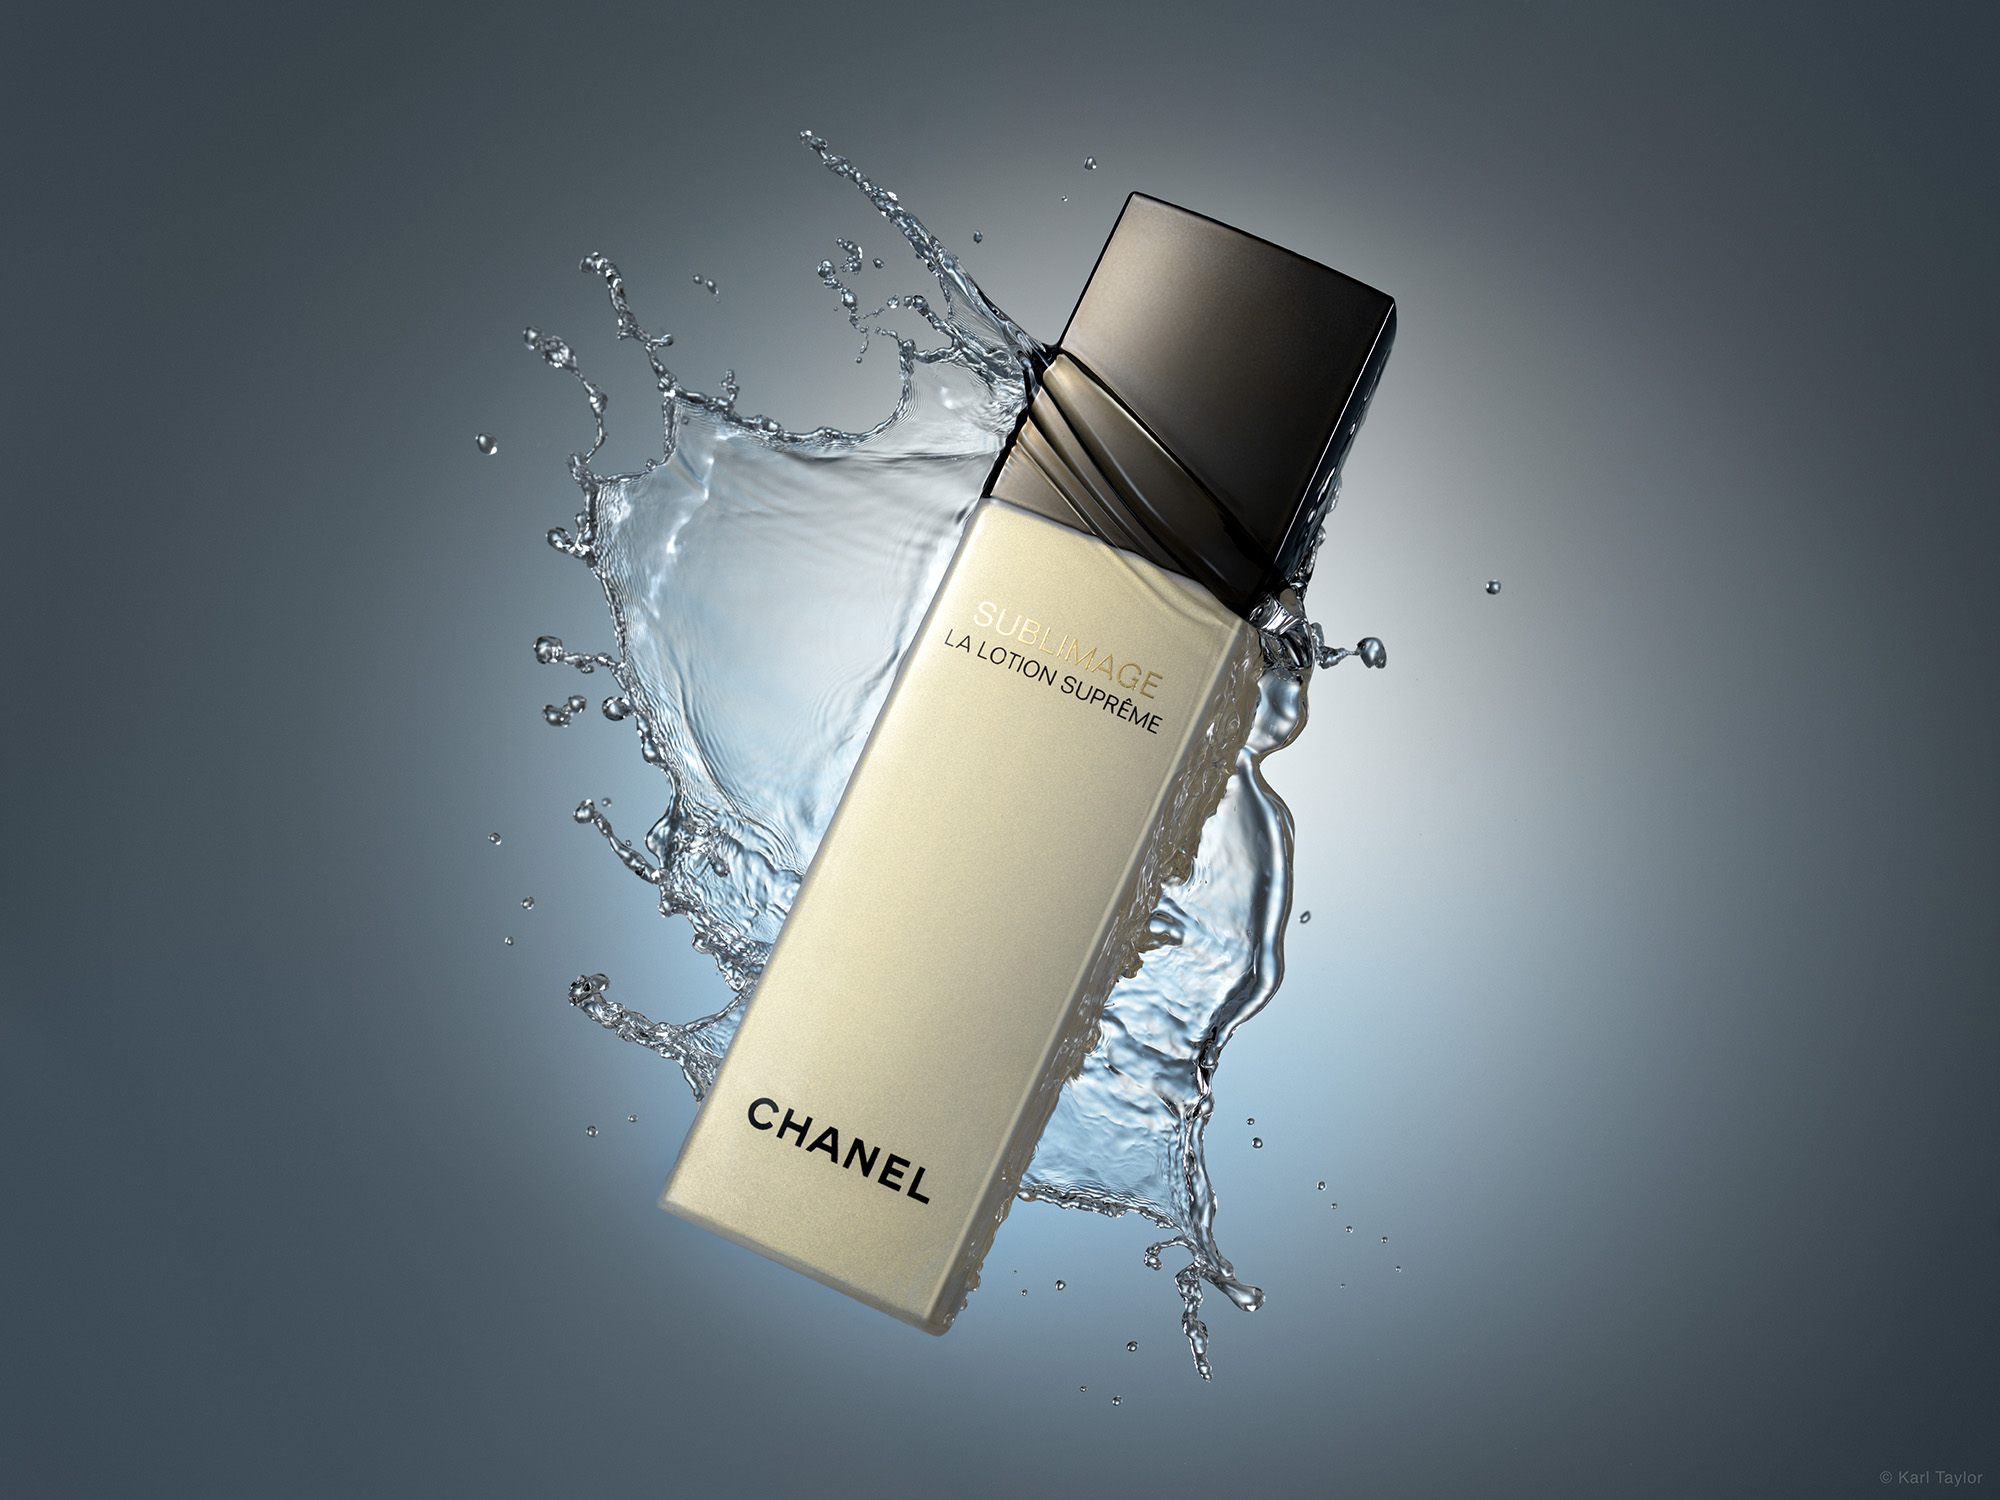 Chanel lotion product photography with water splash